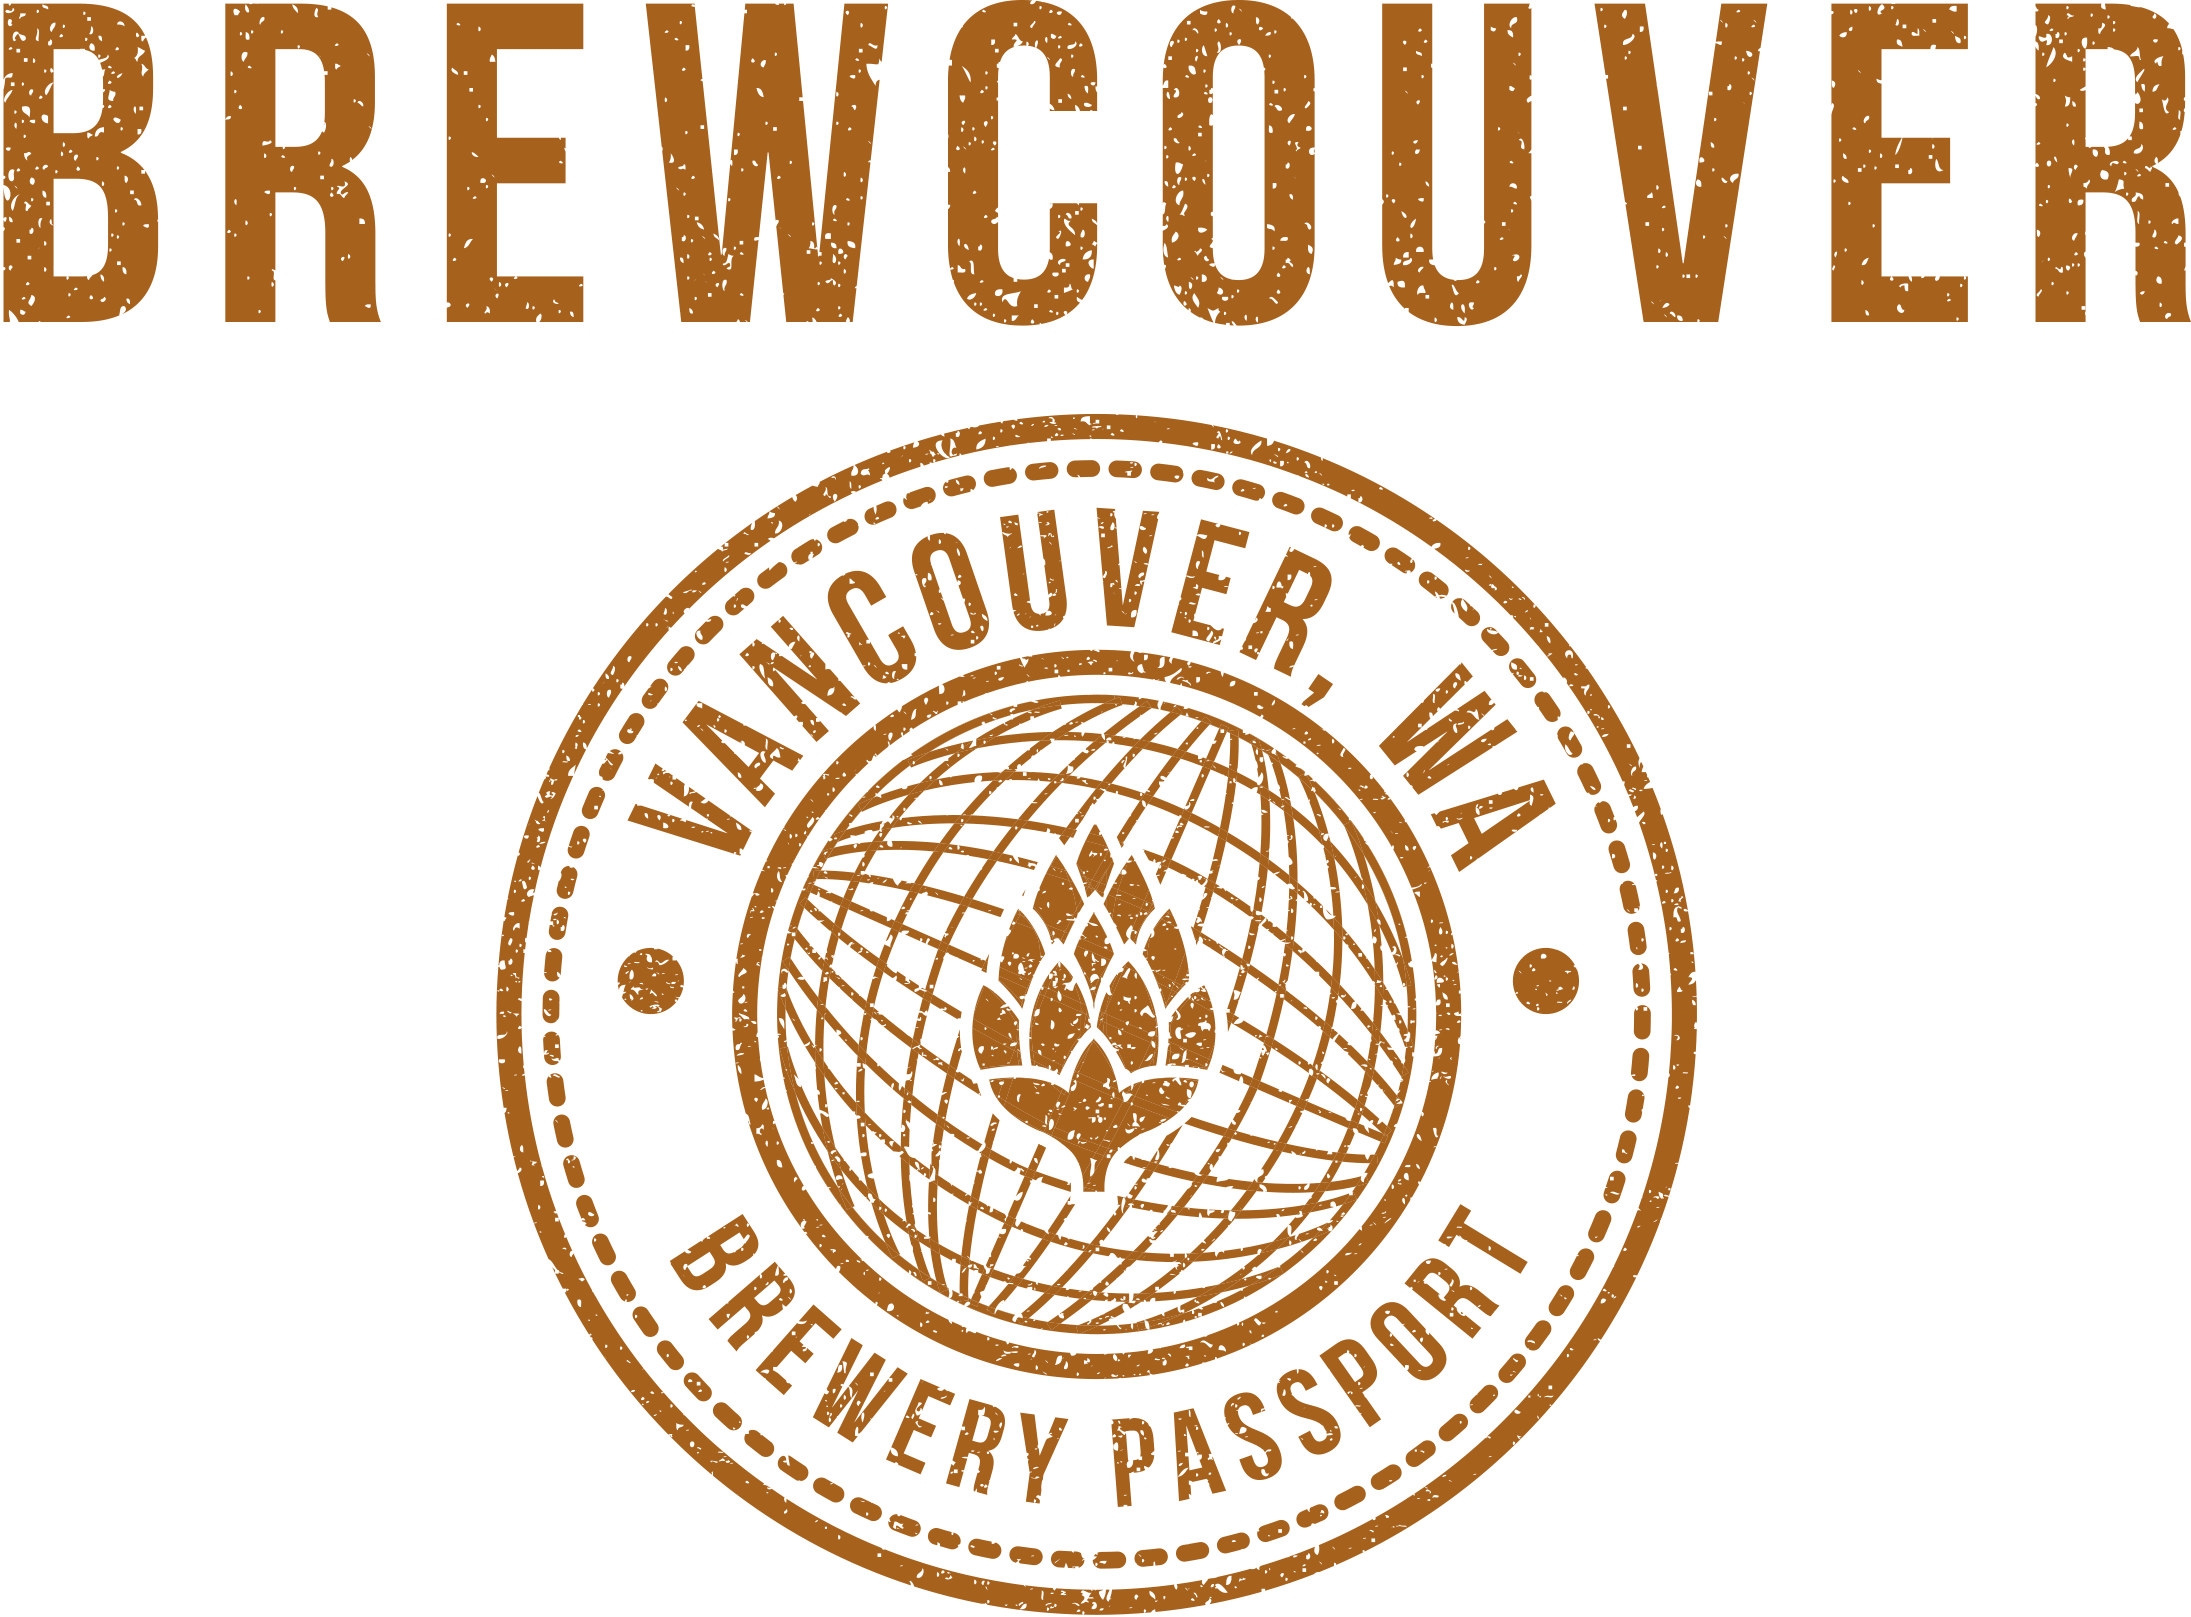 brewcouver logo burnt orange.png